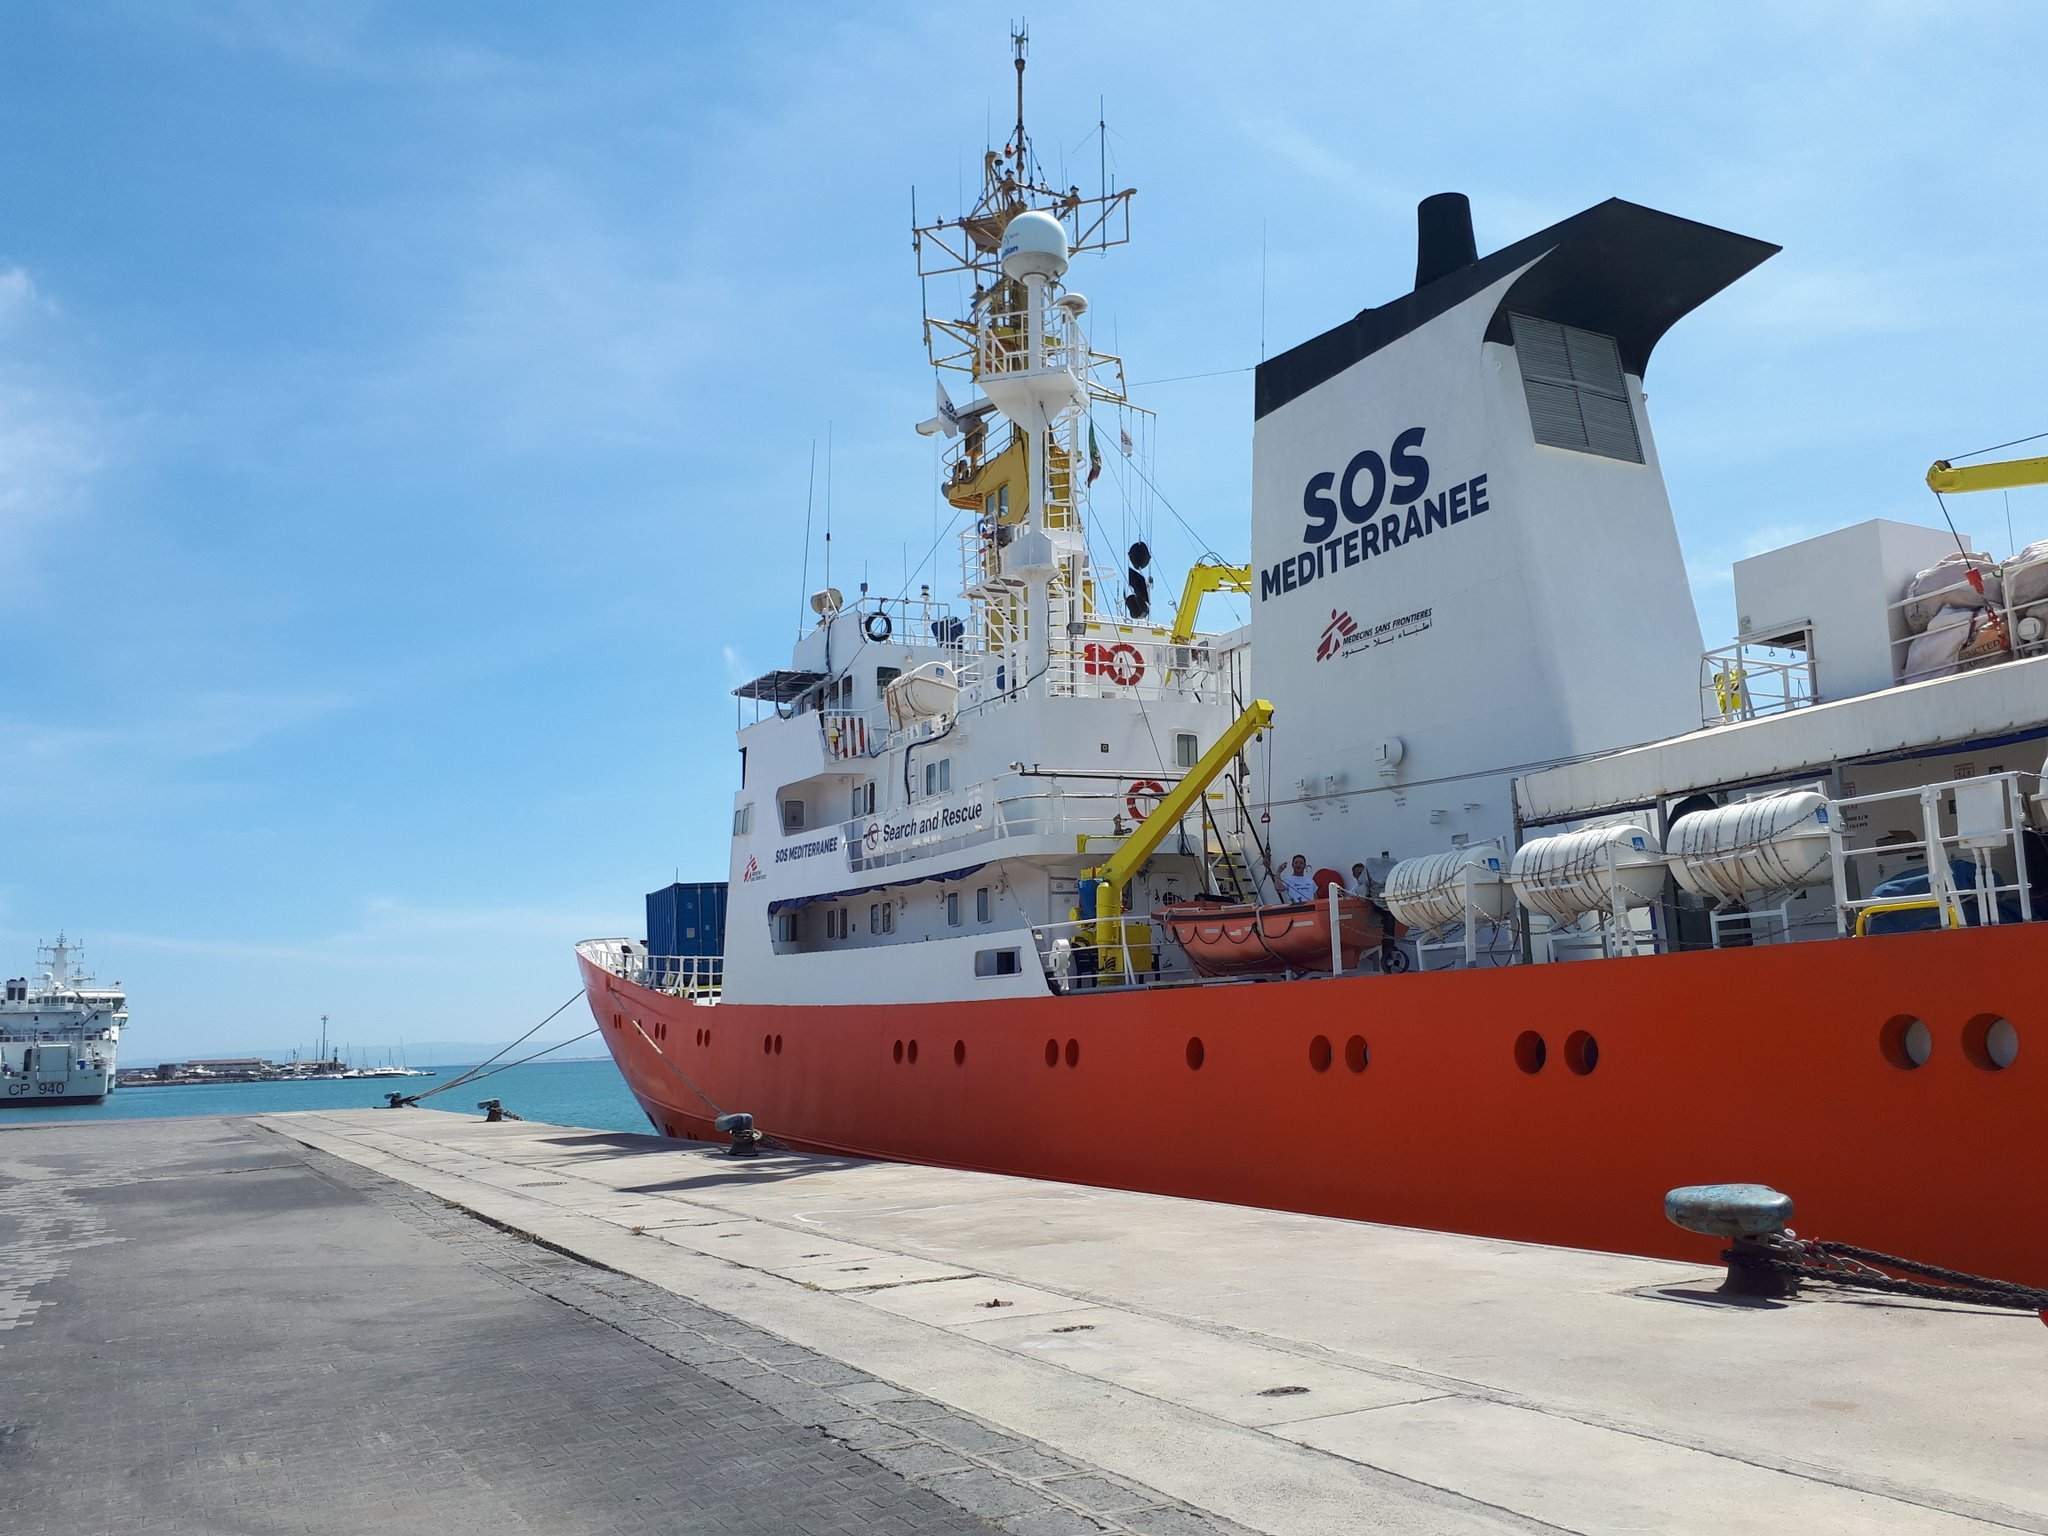 Rescue vessel #Aquarius refused permission to dock in Italy (updated)